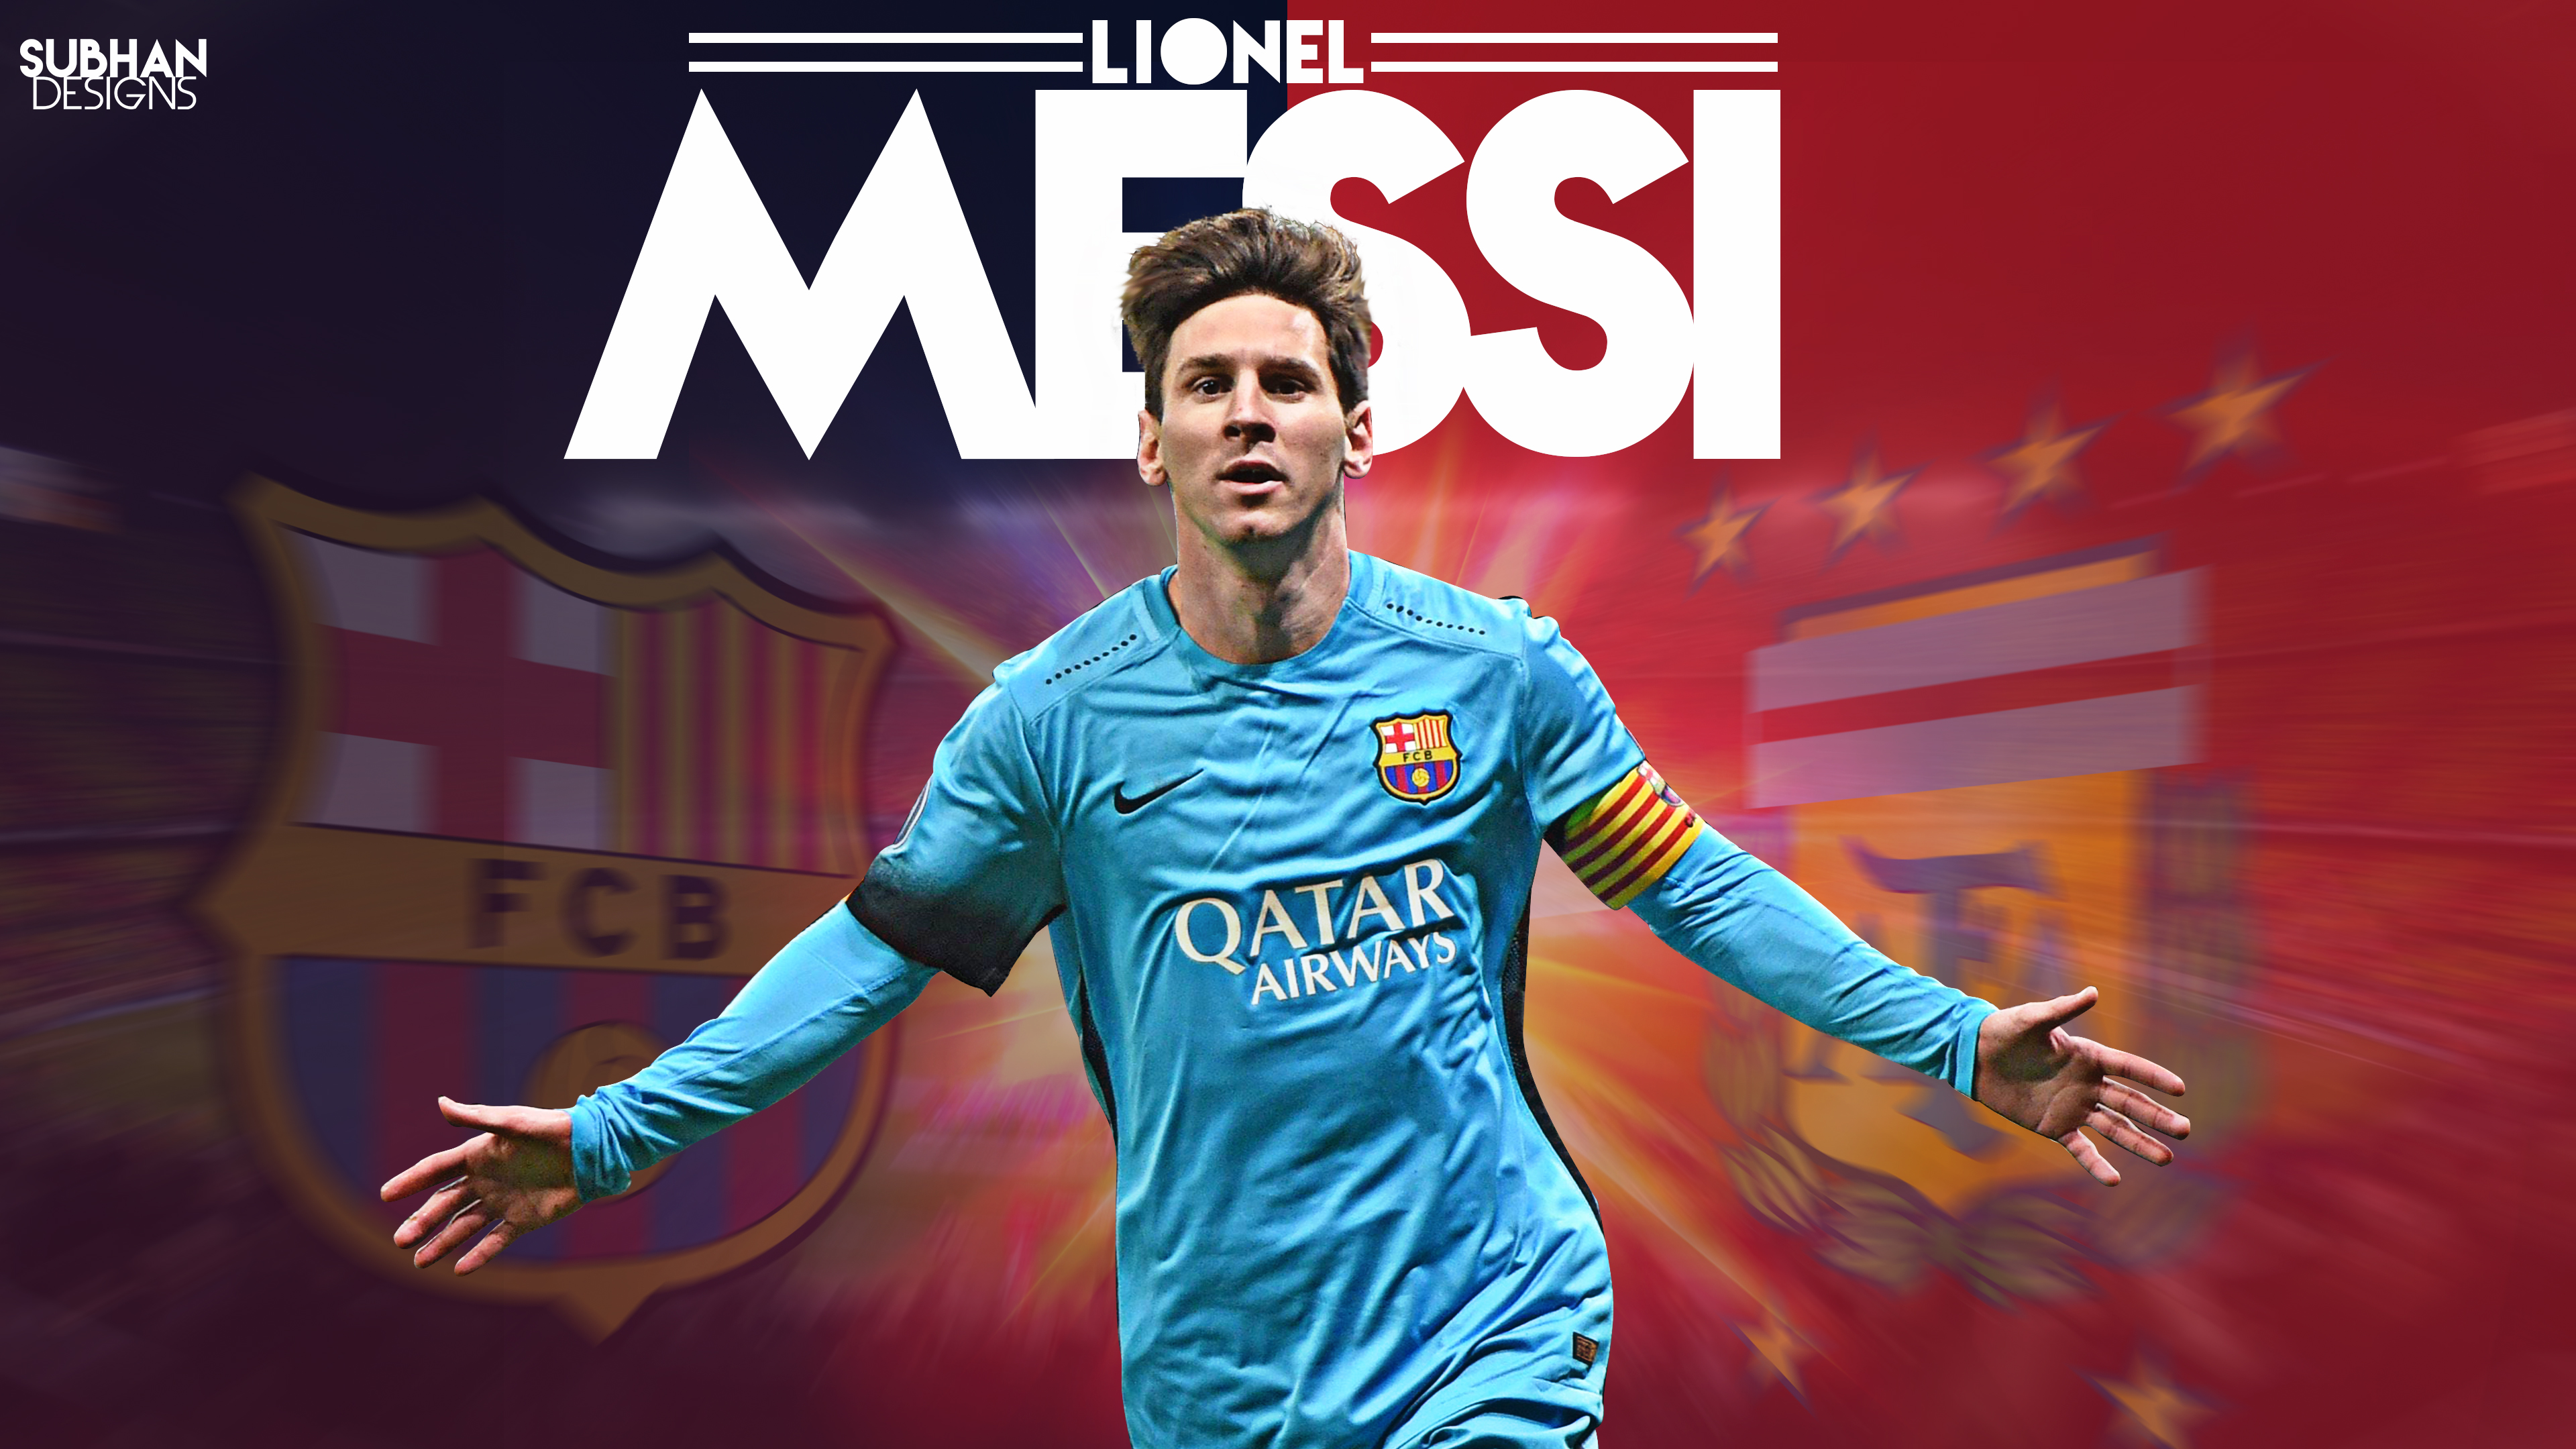 Lionel Messi 2016 wallpaper 4K by subhan22 3840x2160